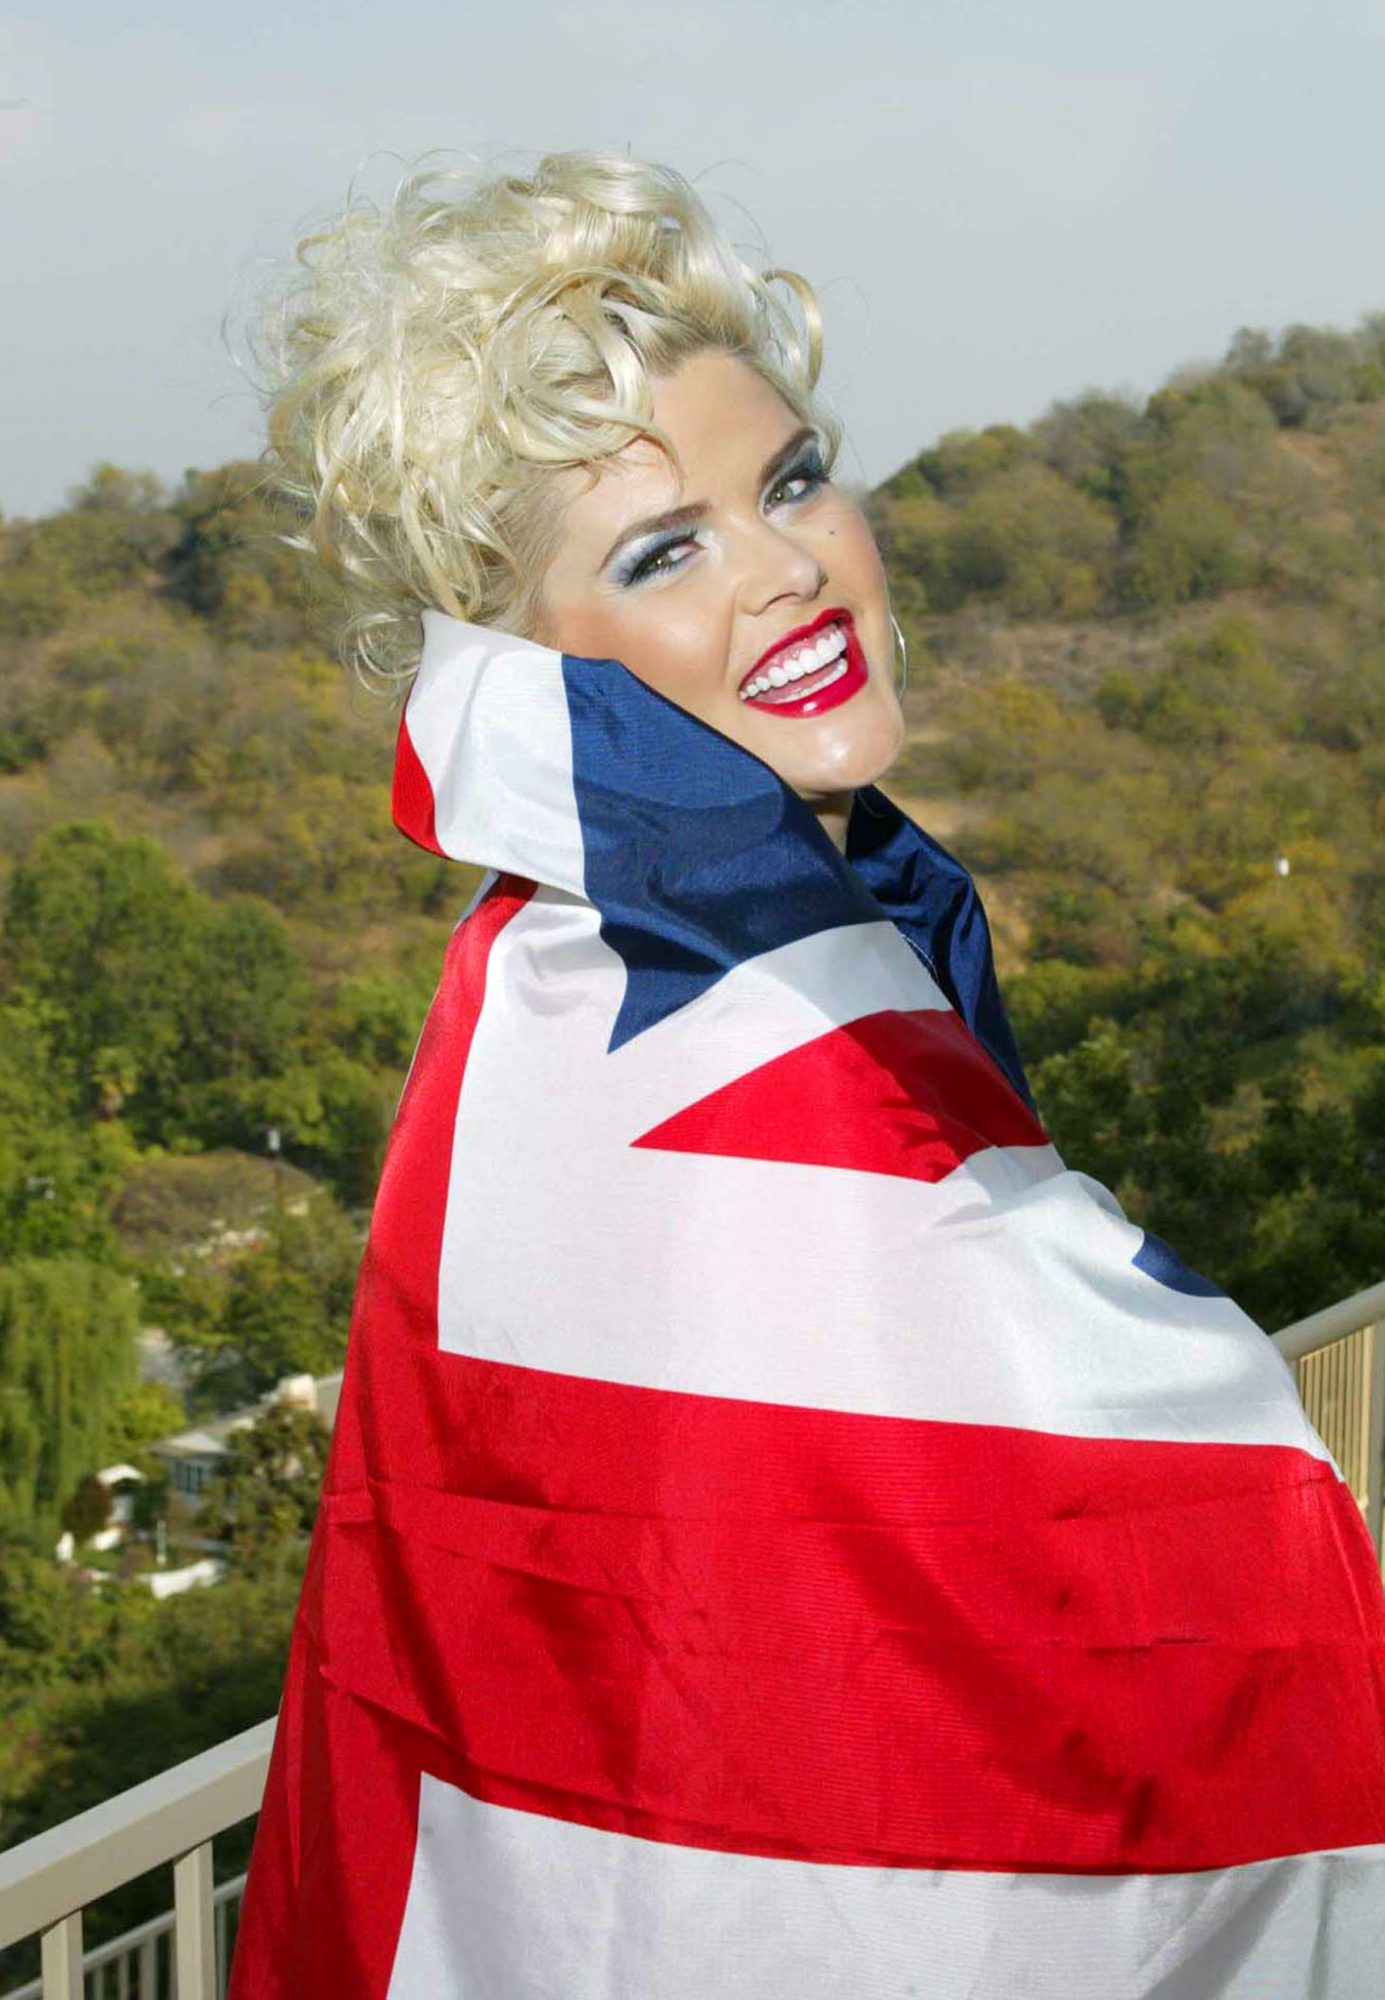 At Home With Anna Nicole Smith